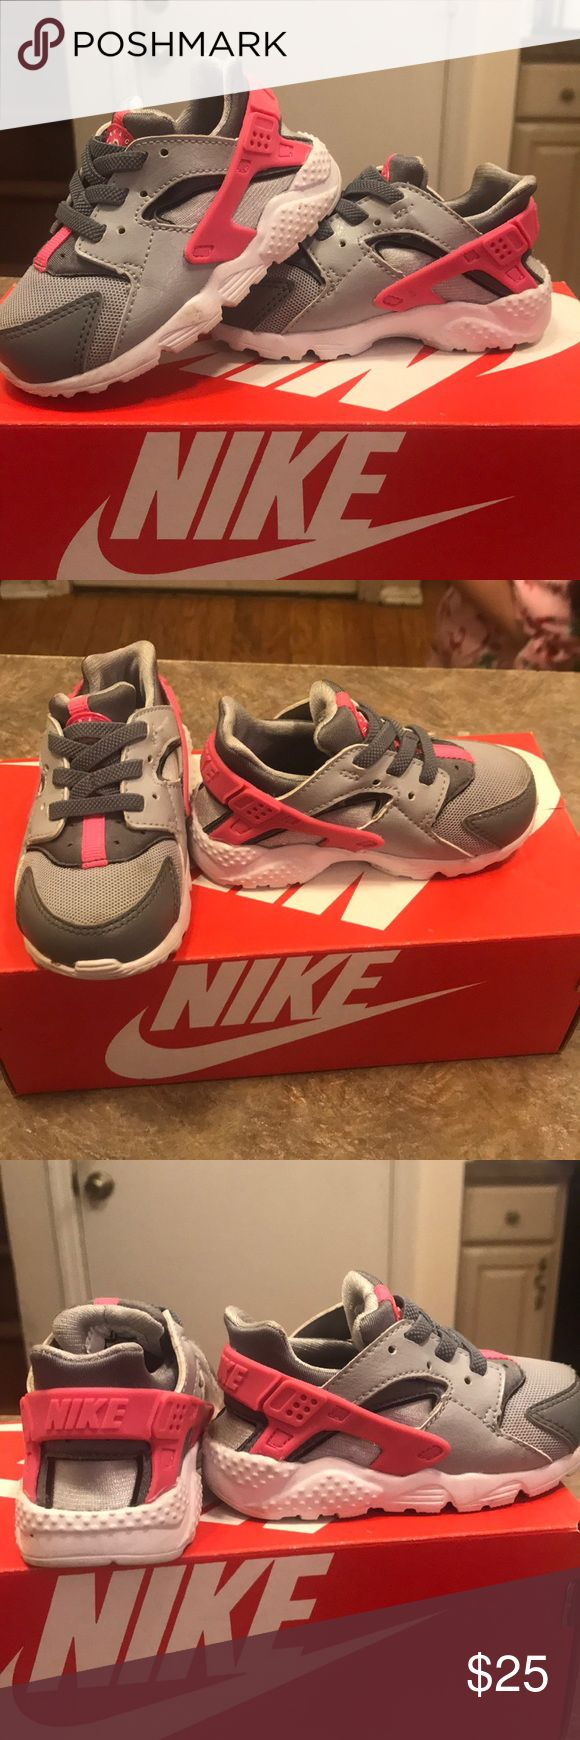 Toddler Nike Huarache SZ 6c Nike Huarache Toddler SZ 6c Grey/pink Like new Nike Shoes Sneakers